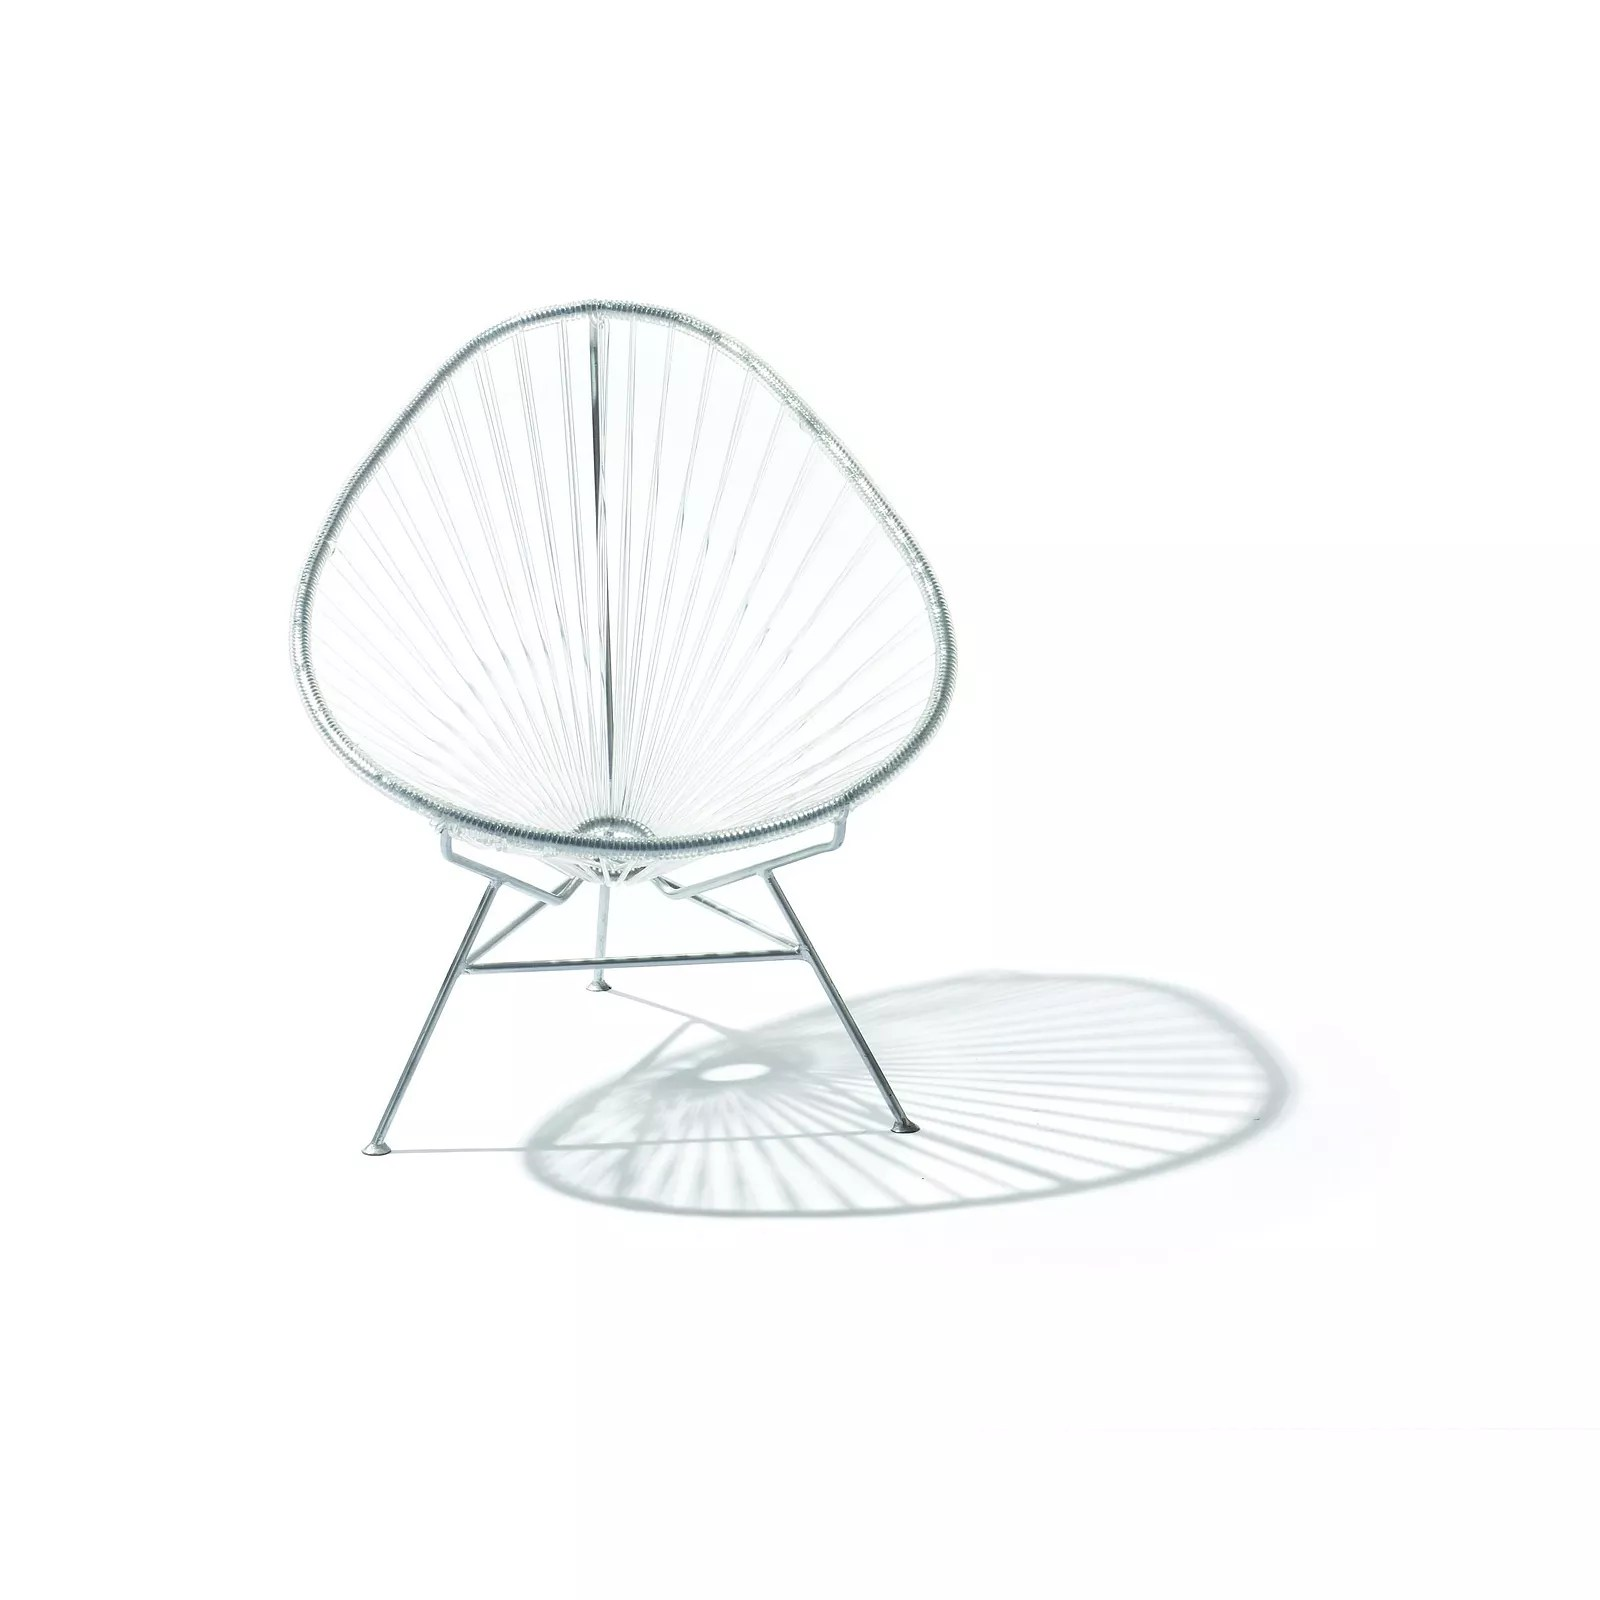 Viva Mexico Chair Acapulco Chair Viva Mexico Design Is This